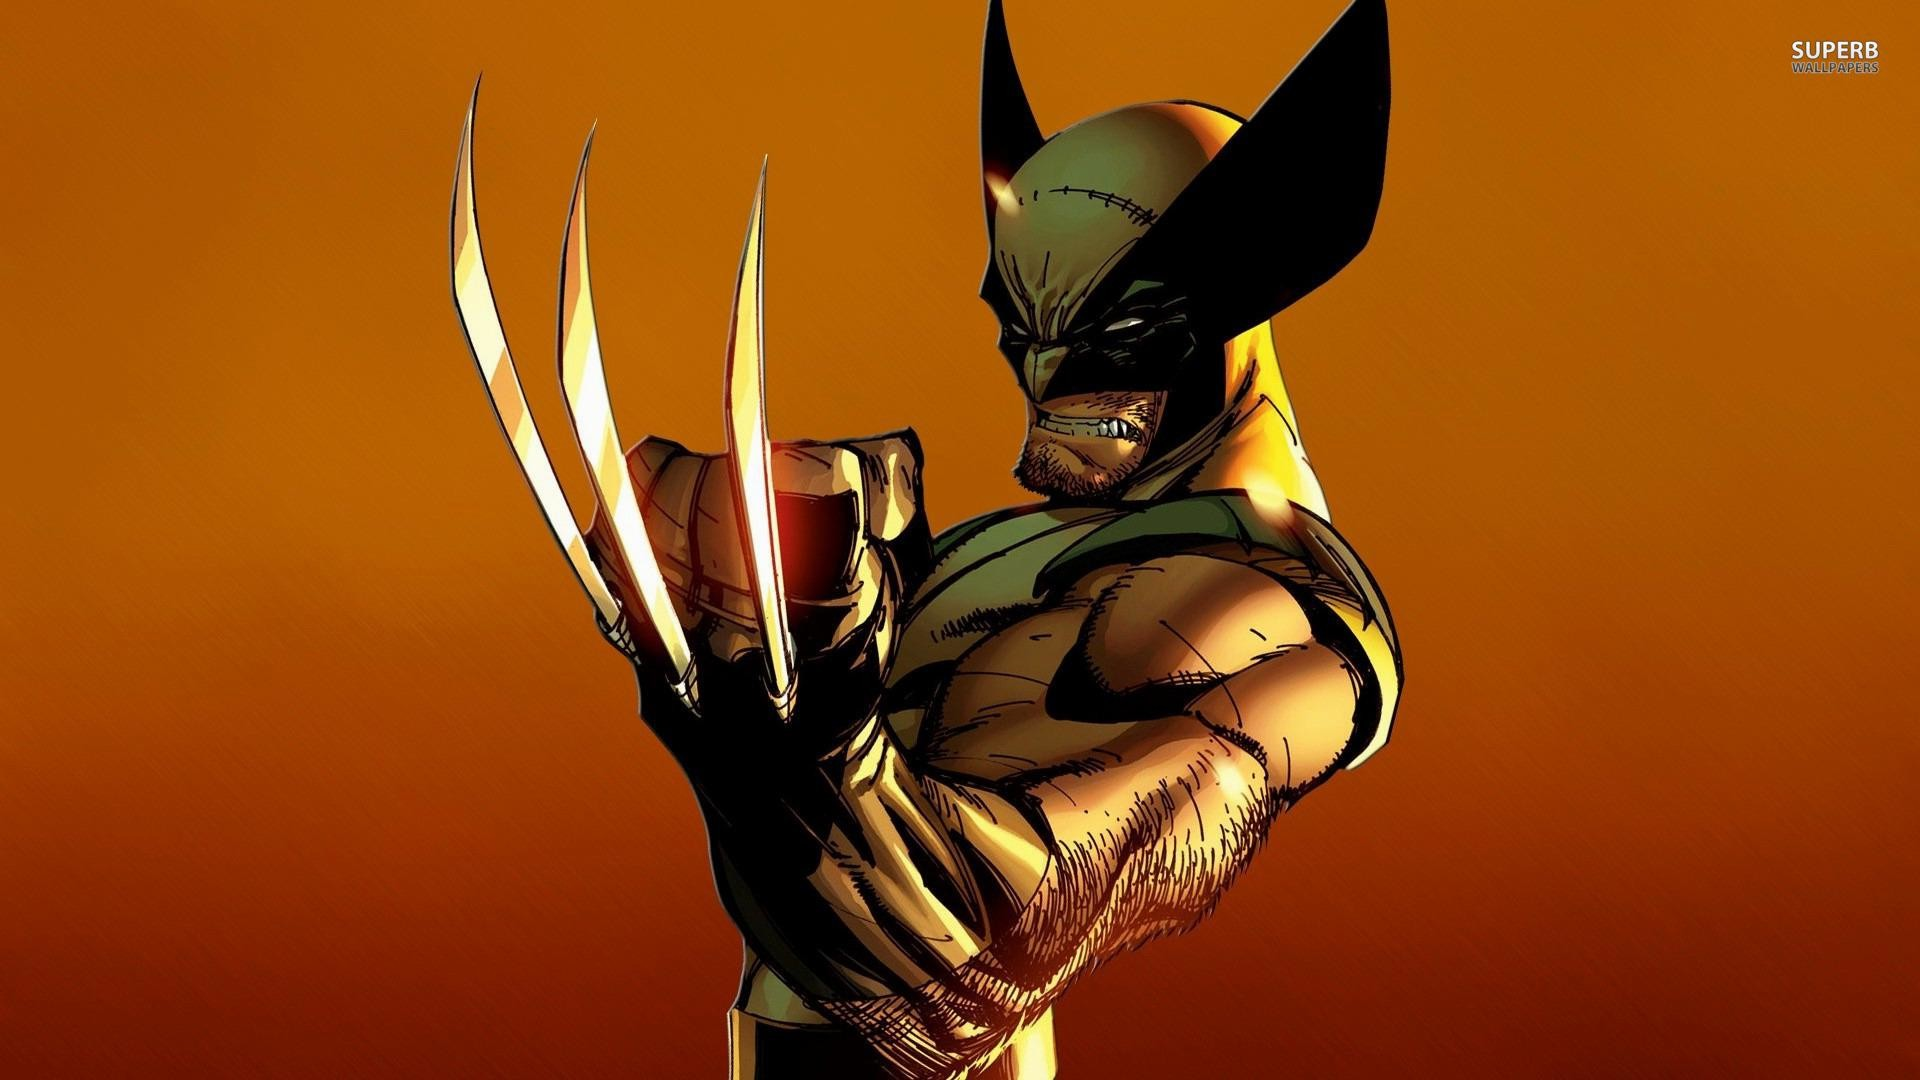 The Wolverine Movie Wallpapers HD Wallpapers Wolverine Pics Wallpapers  Wallpapers)